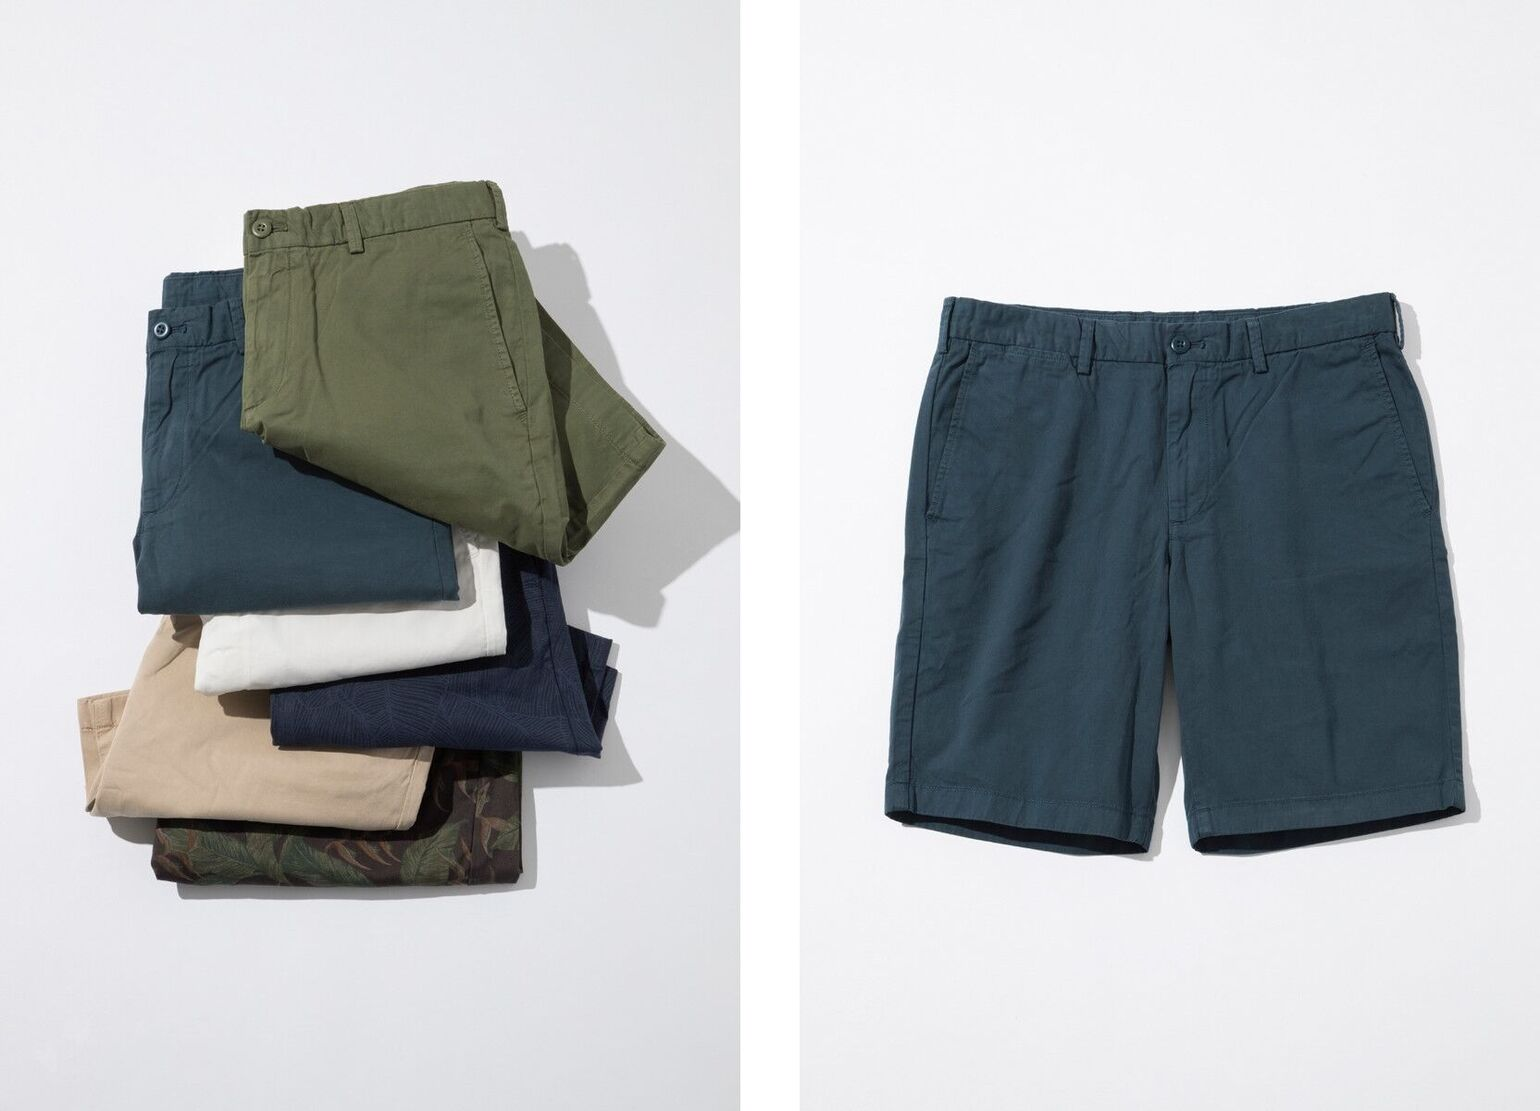 b28c4920d7d DAILY TOP10:TODAY'S PICK UP - UNIQLO